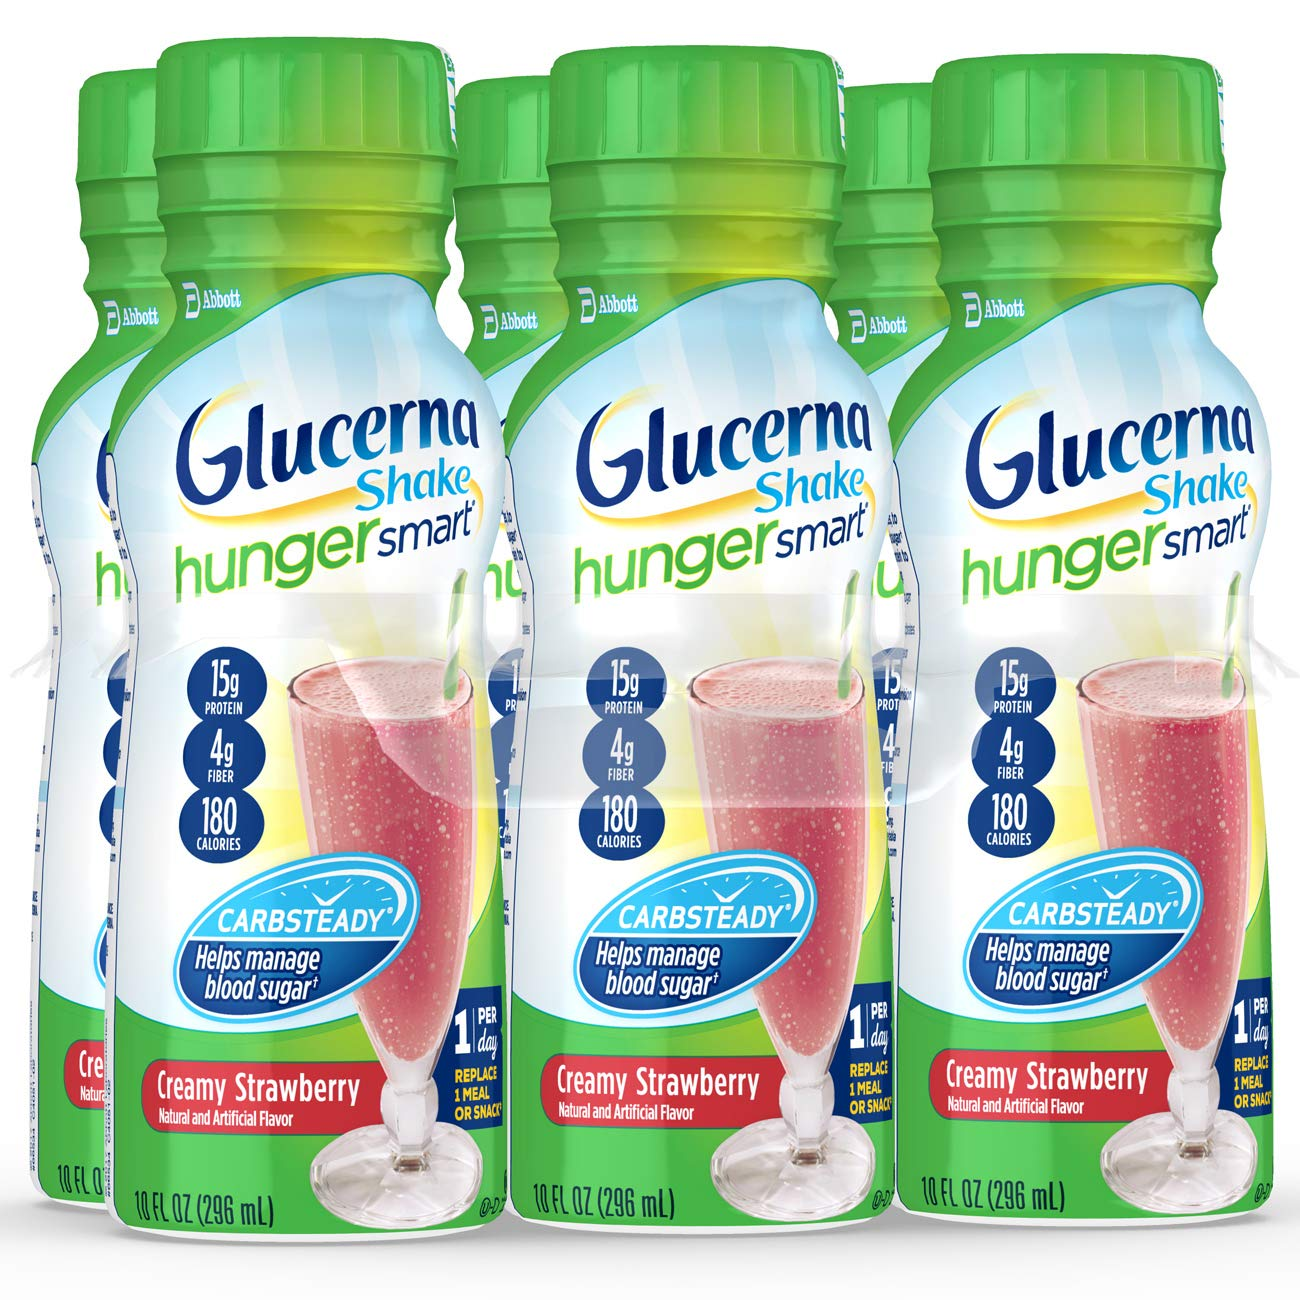 Glucerna Hunger Smart, Diabetes Nutritional Shake, To Help Manage Blood Sugar, Creamy Strawberry, 10 Fl Oz, 24 Count